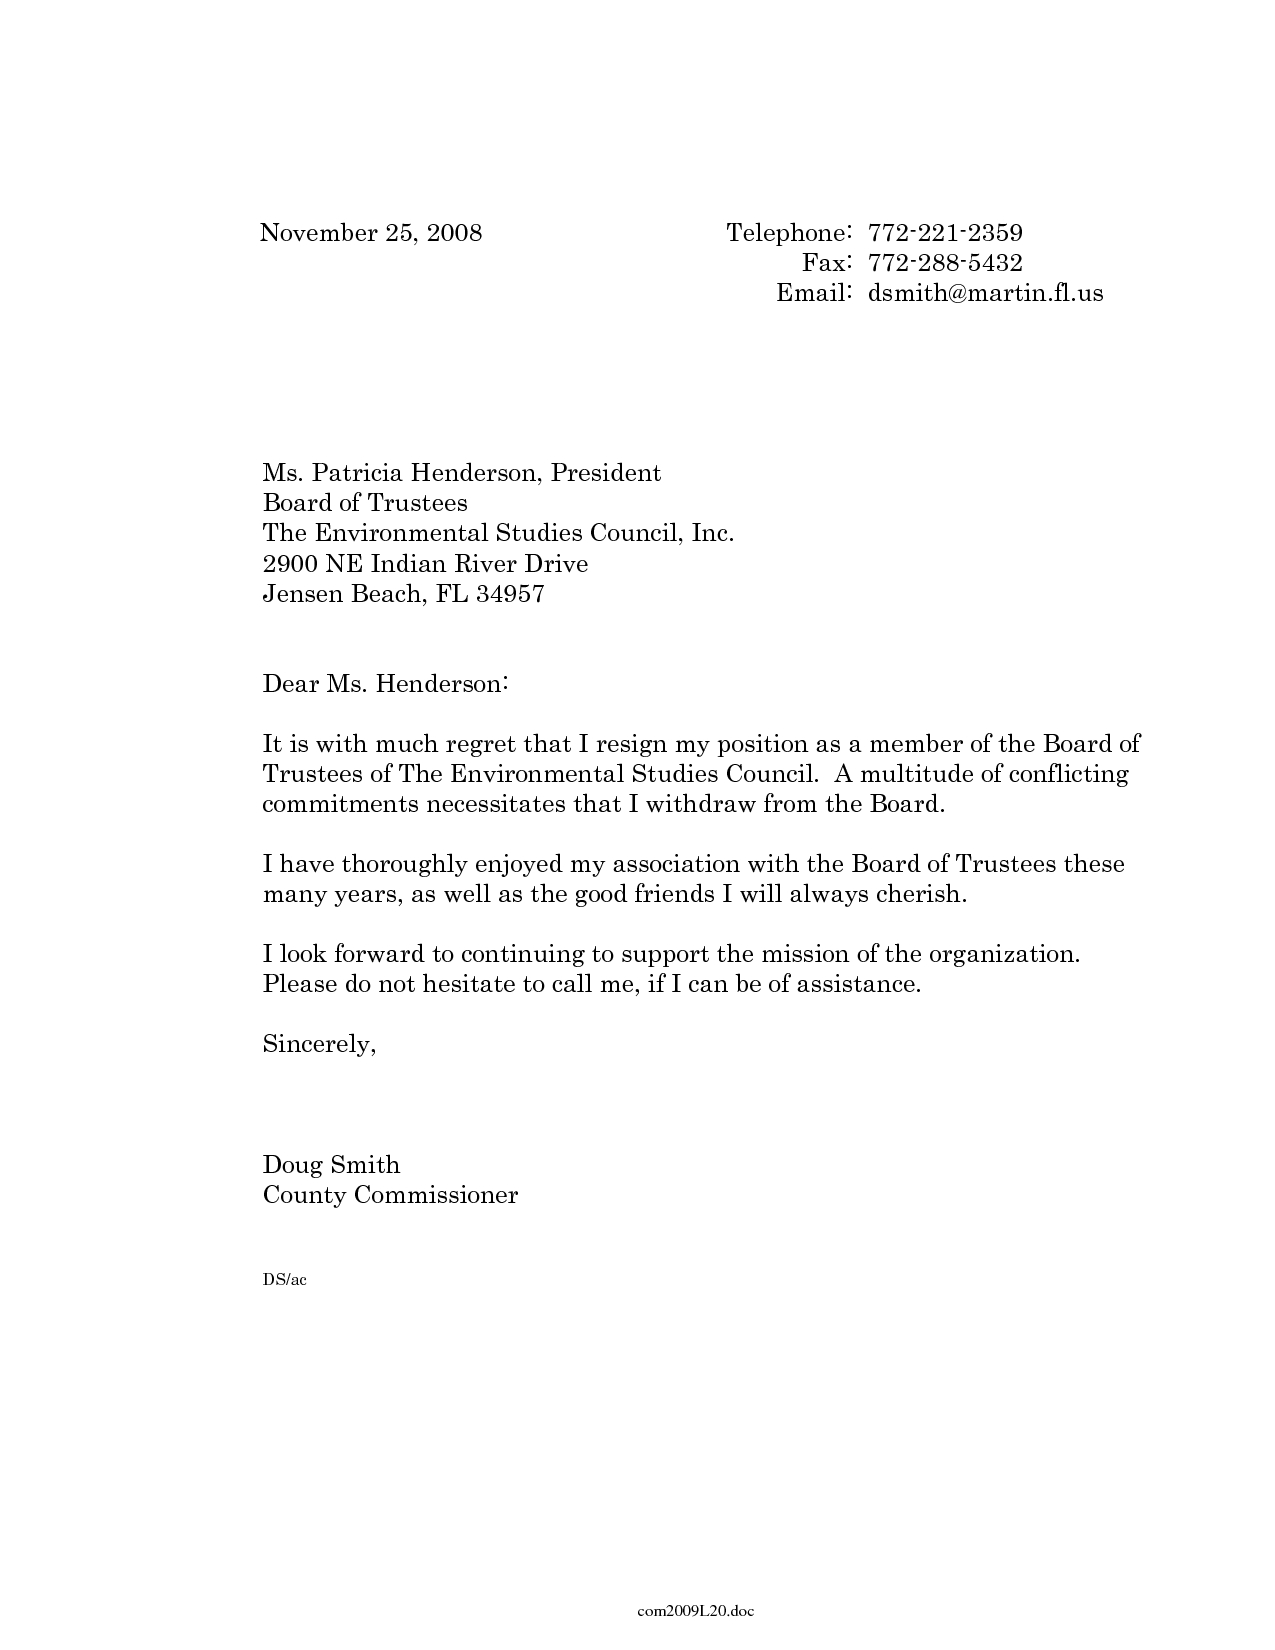 trustee resignation letter template ses resume examples example of a